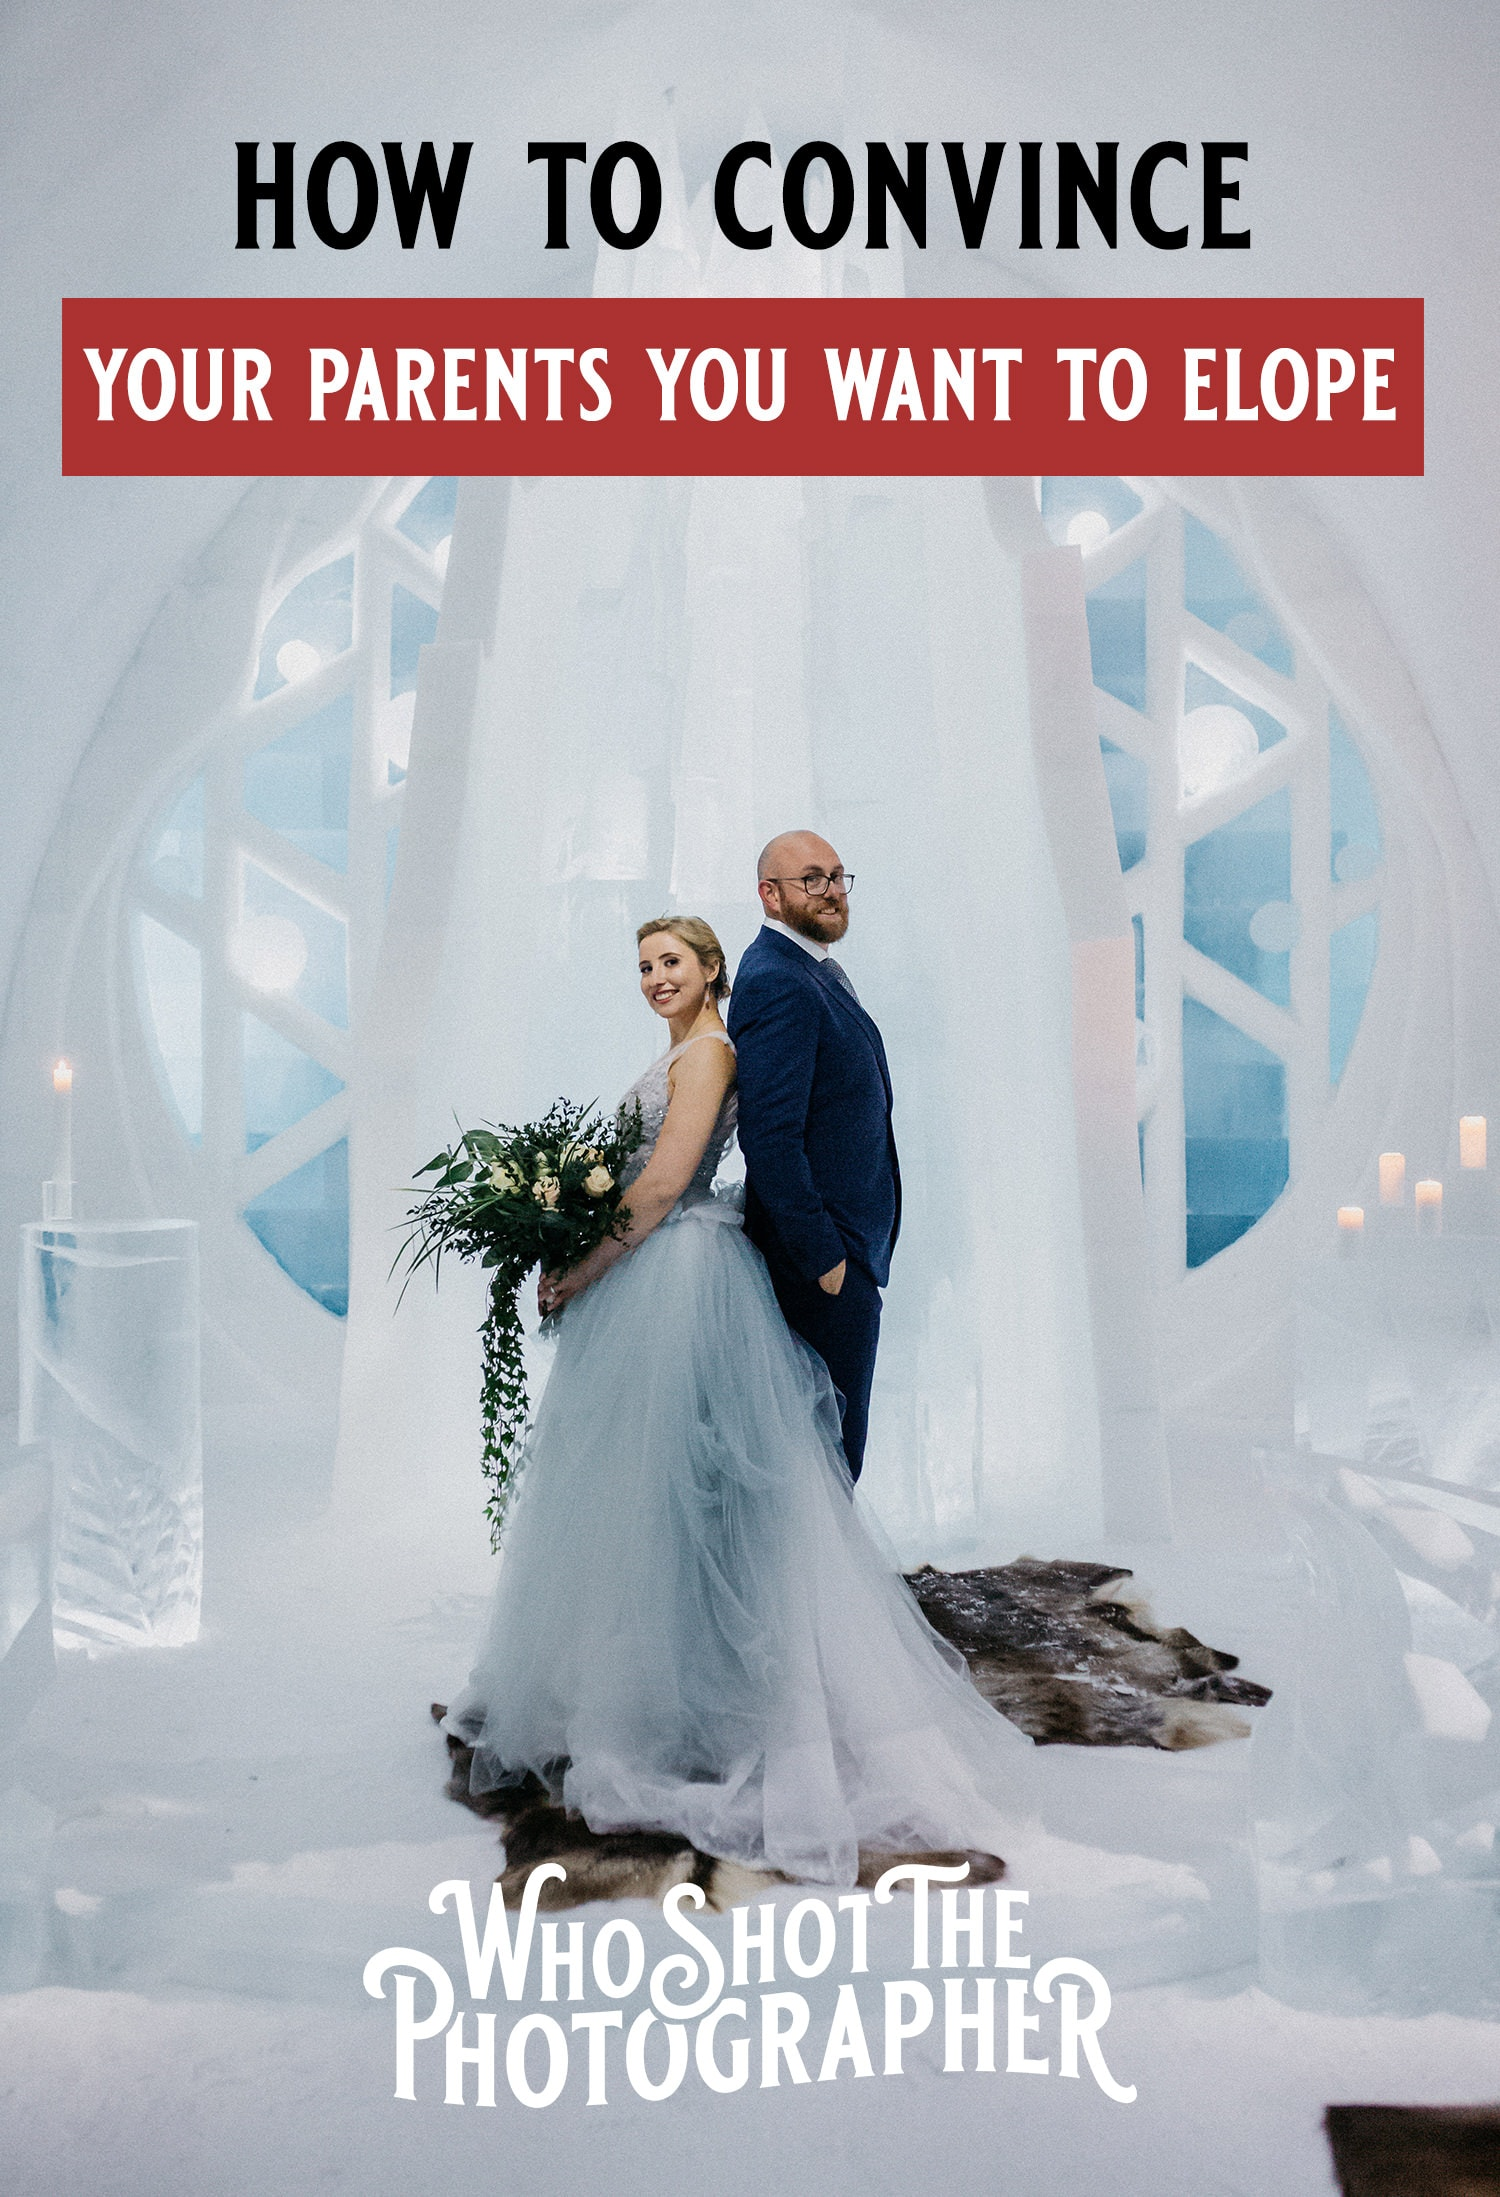 How to convince your parents you want to elope, How to convince your parents you want to elope